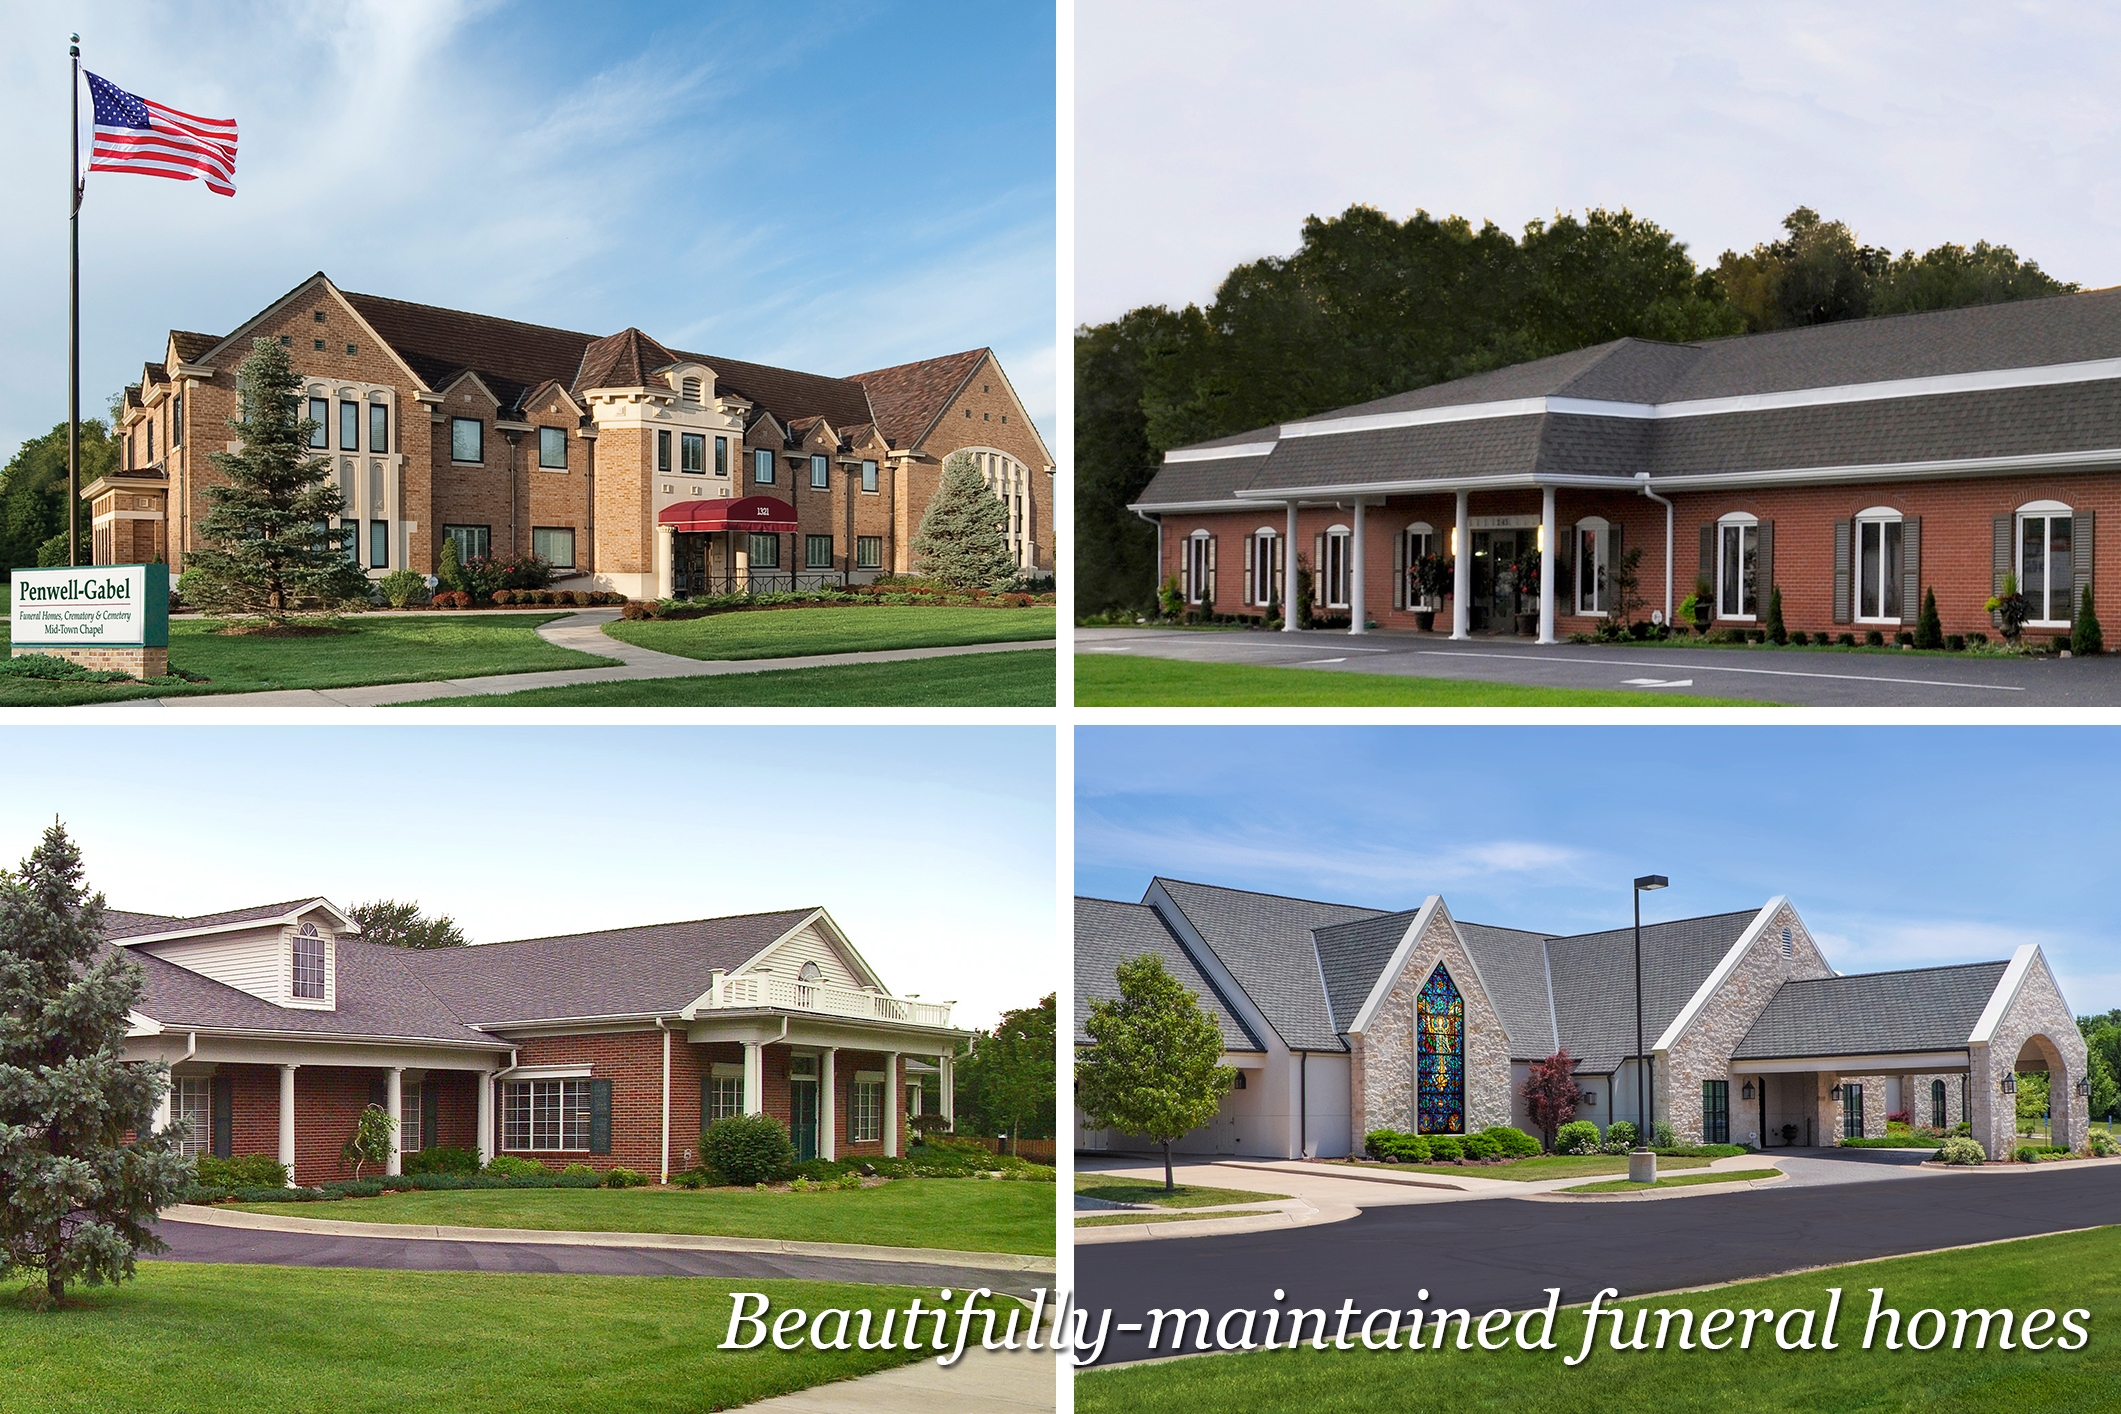 Penwell-Gabel funeral home